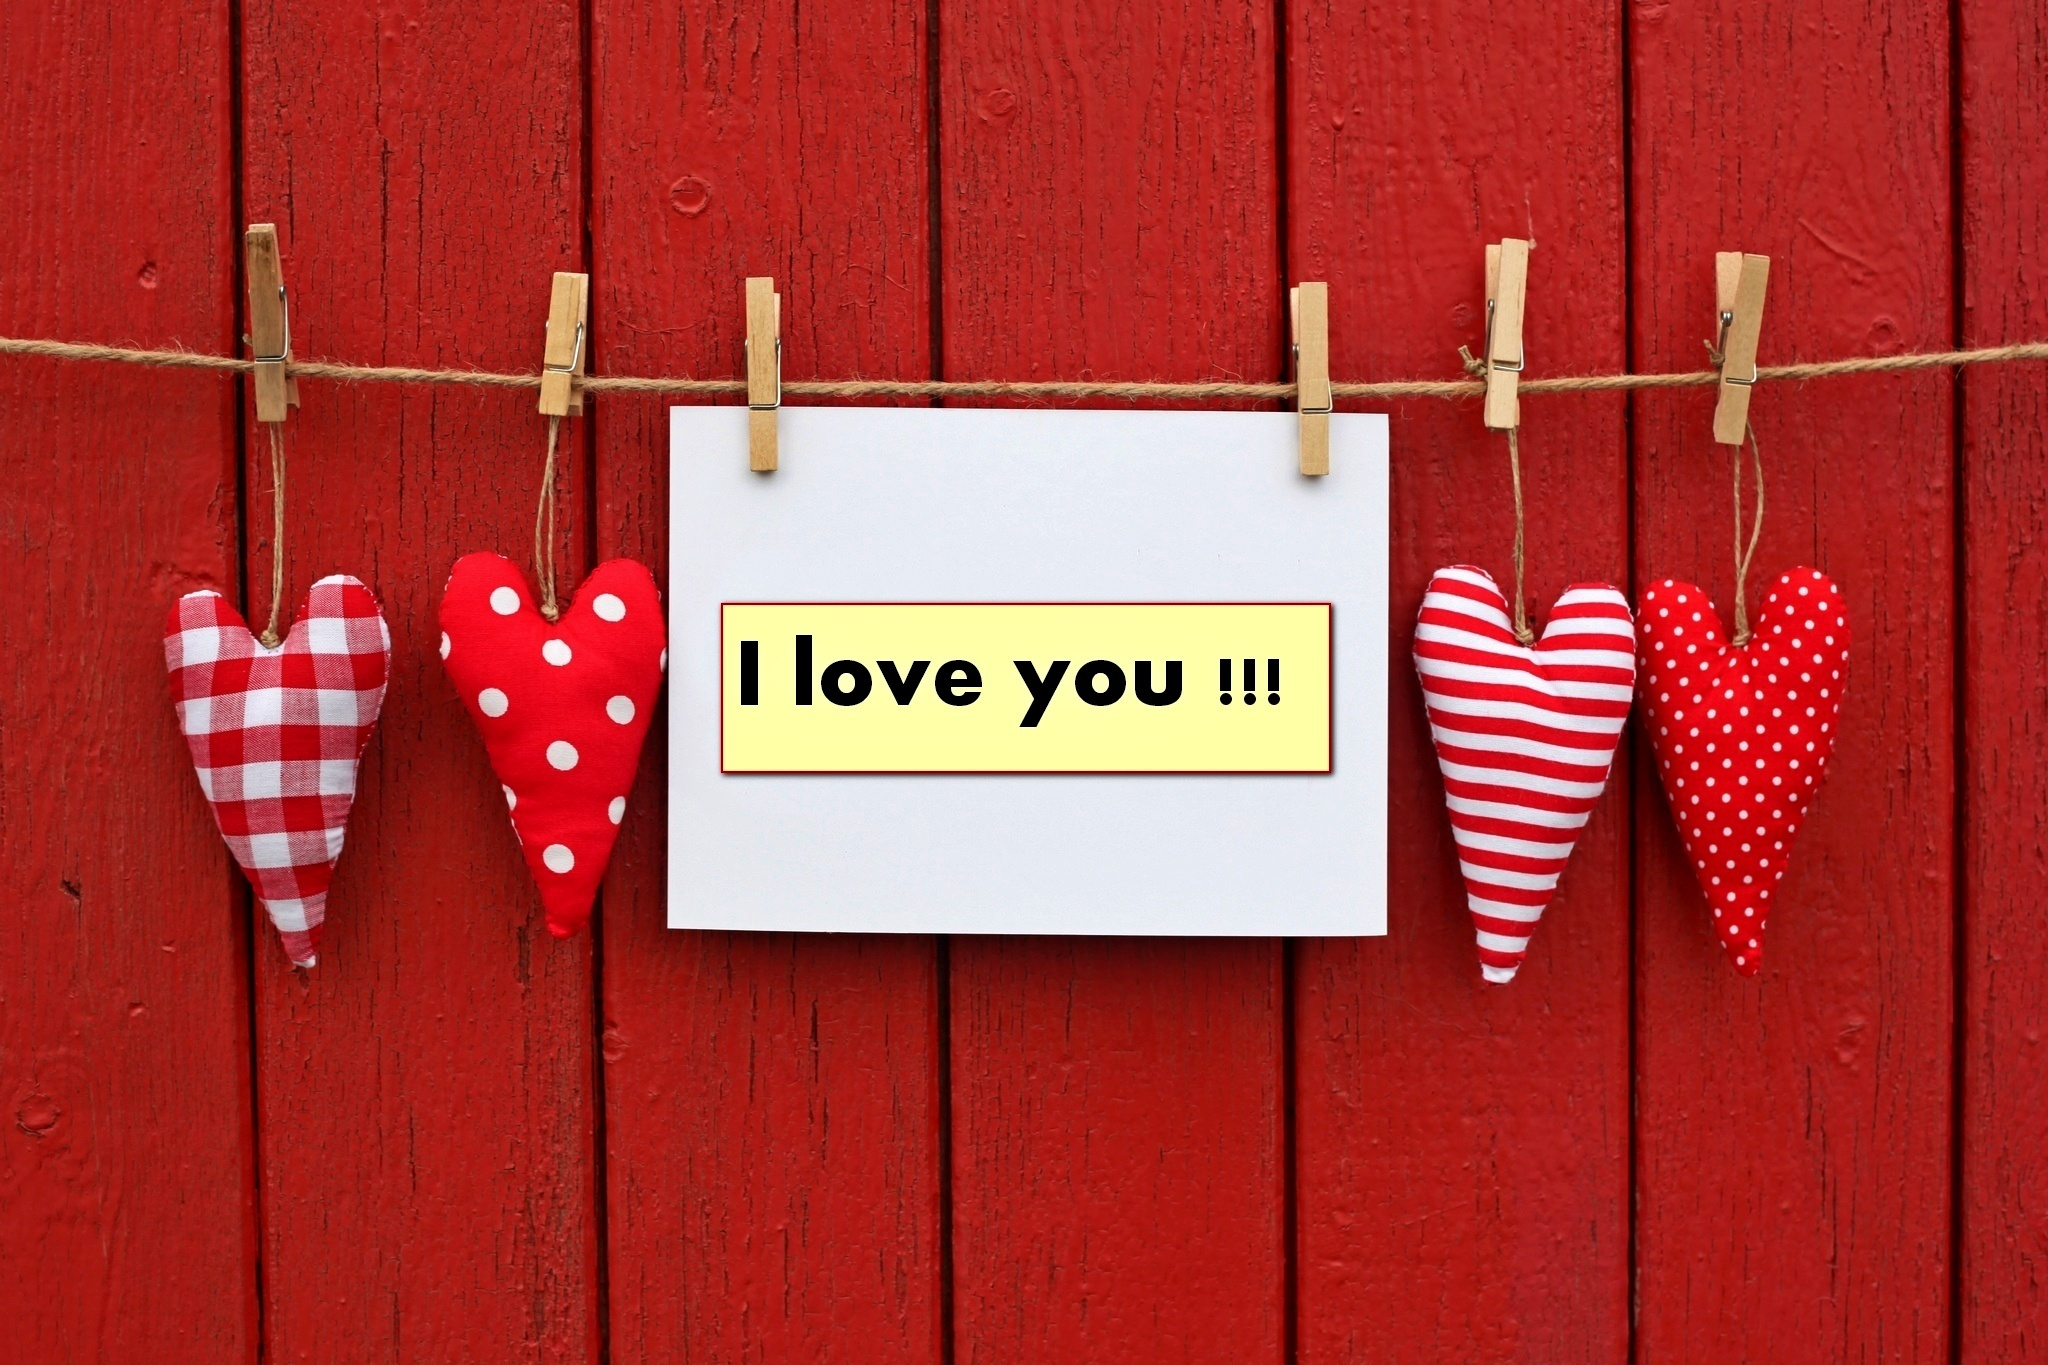 I Love You Wallpapers HD A9 - HD Desktop Wallpapers 4k HD